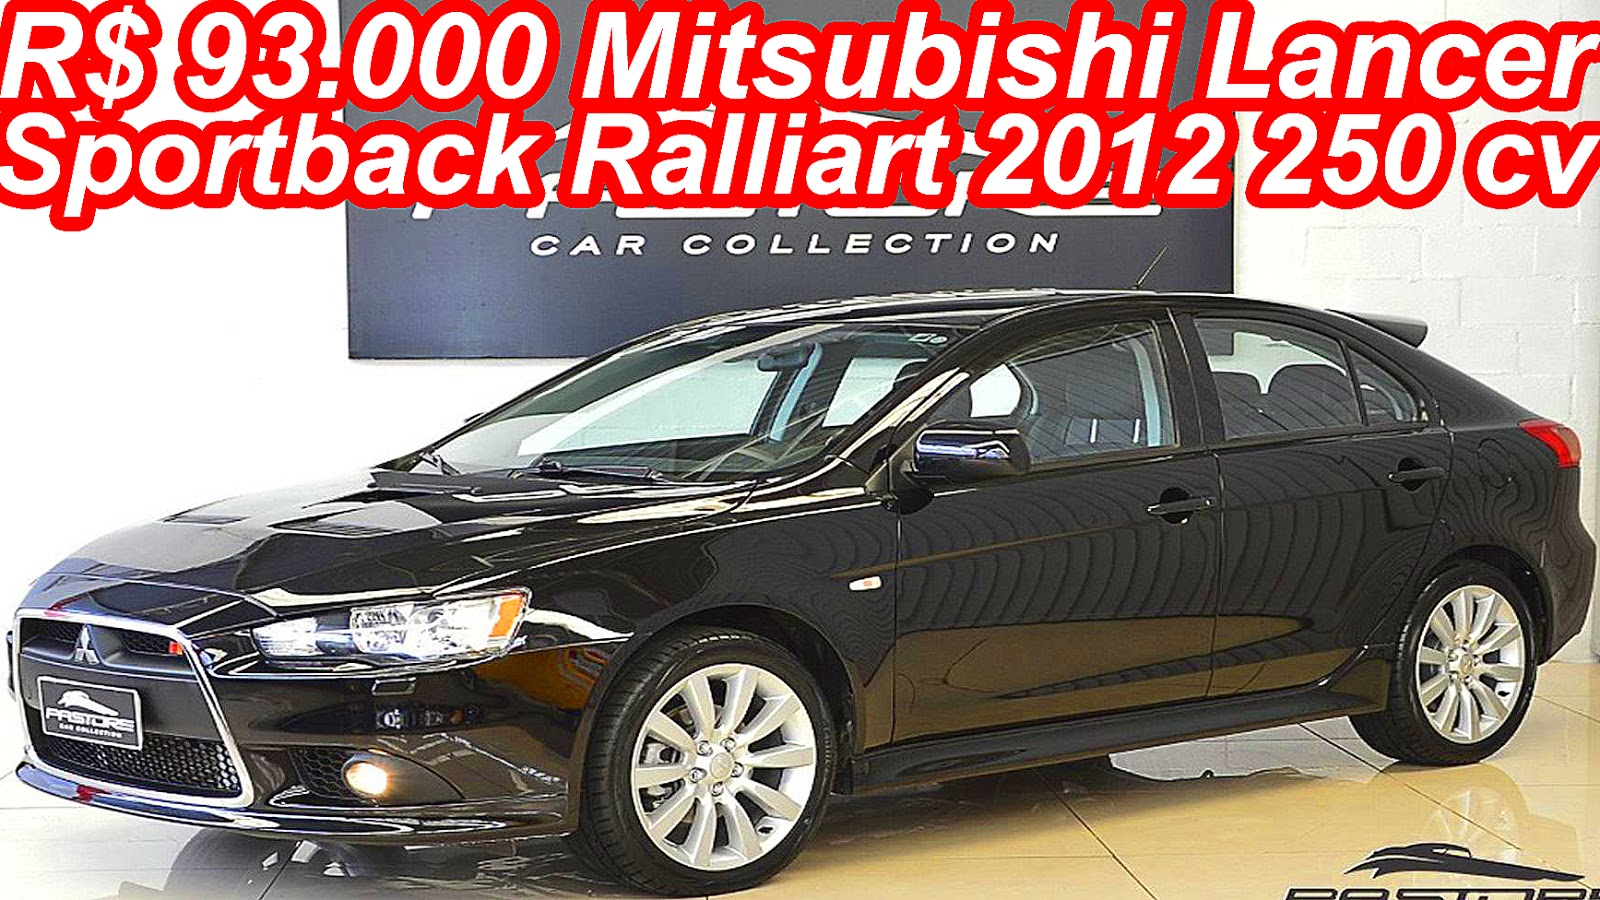 PASTORE R$ 93.000 Mitsubishi Lancer Sportback Ralliart 2012 aro 18 4x4 AT6 2.0 Turbo 250 cv 35 ...